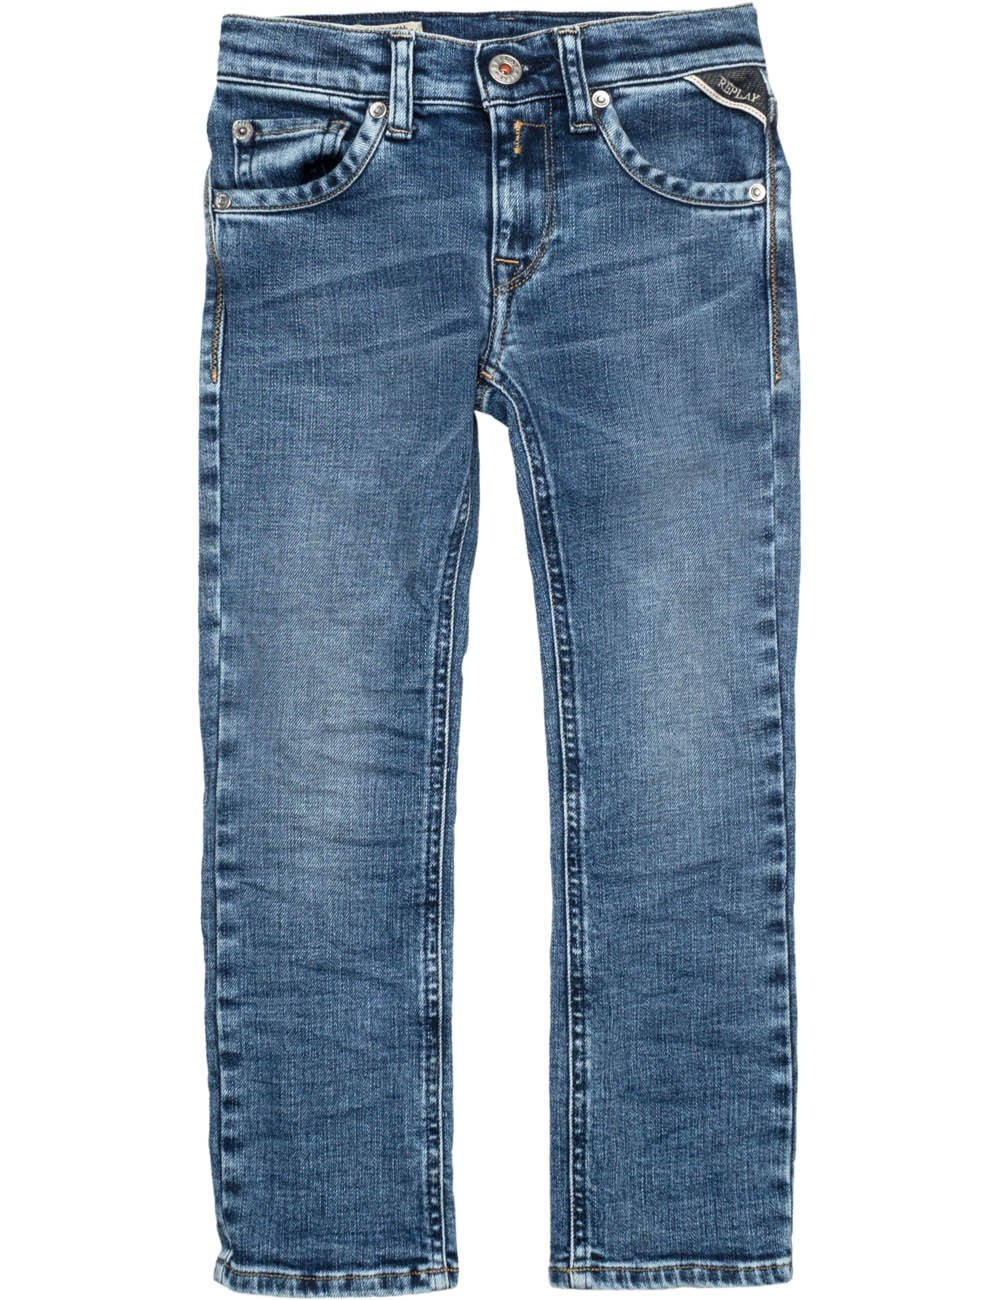 Replay Boys Blue Denim Trousers in Size 10 Years Blue by Replay